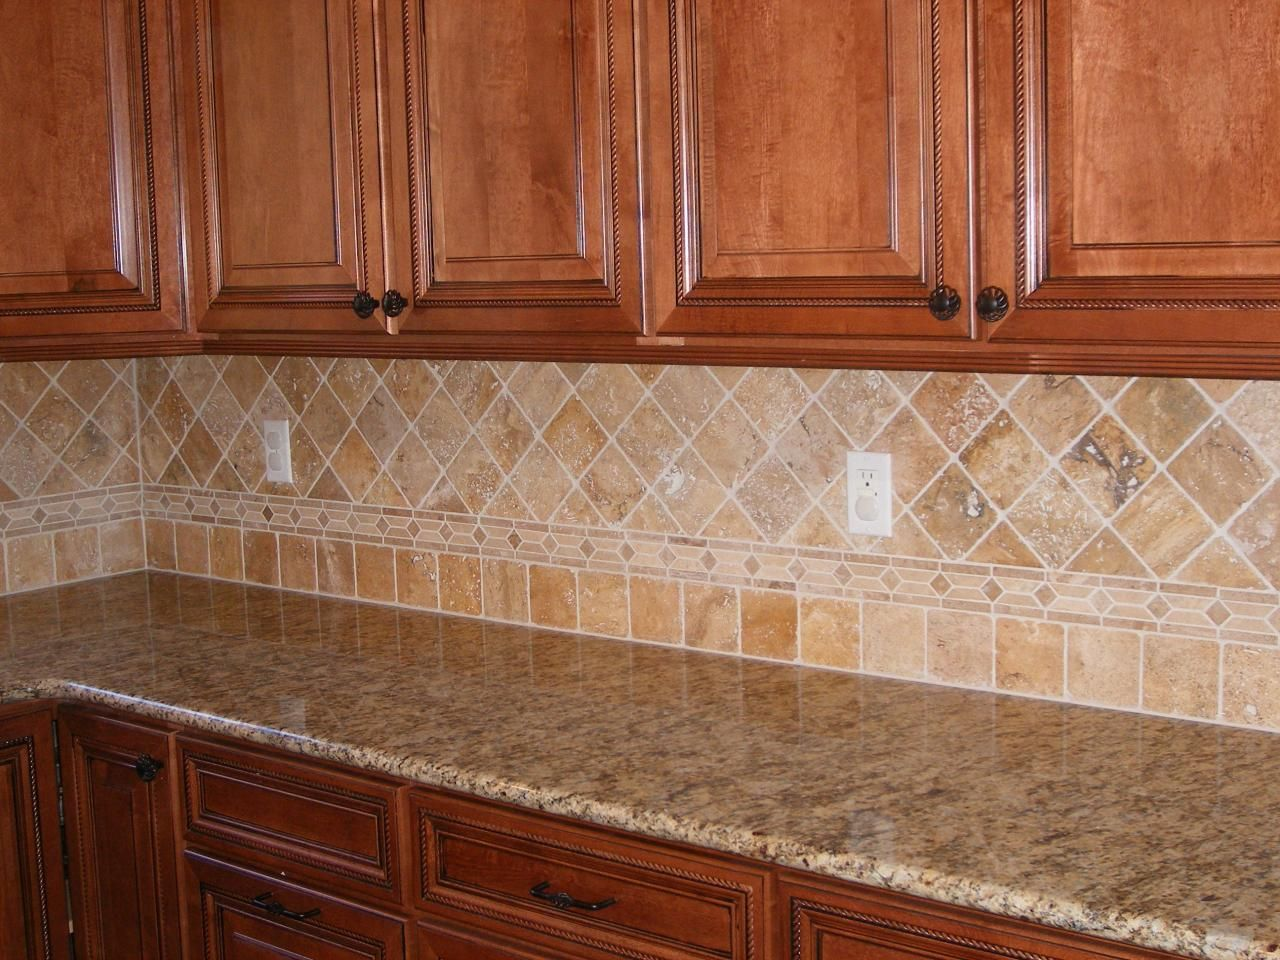 Travertine backsplash | For the Home | Pinterest